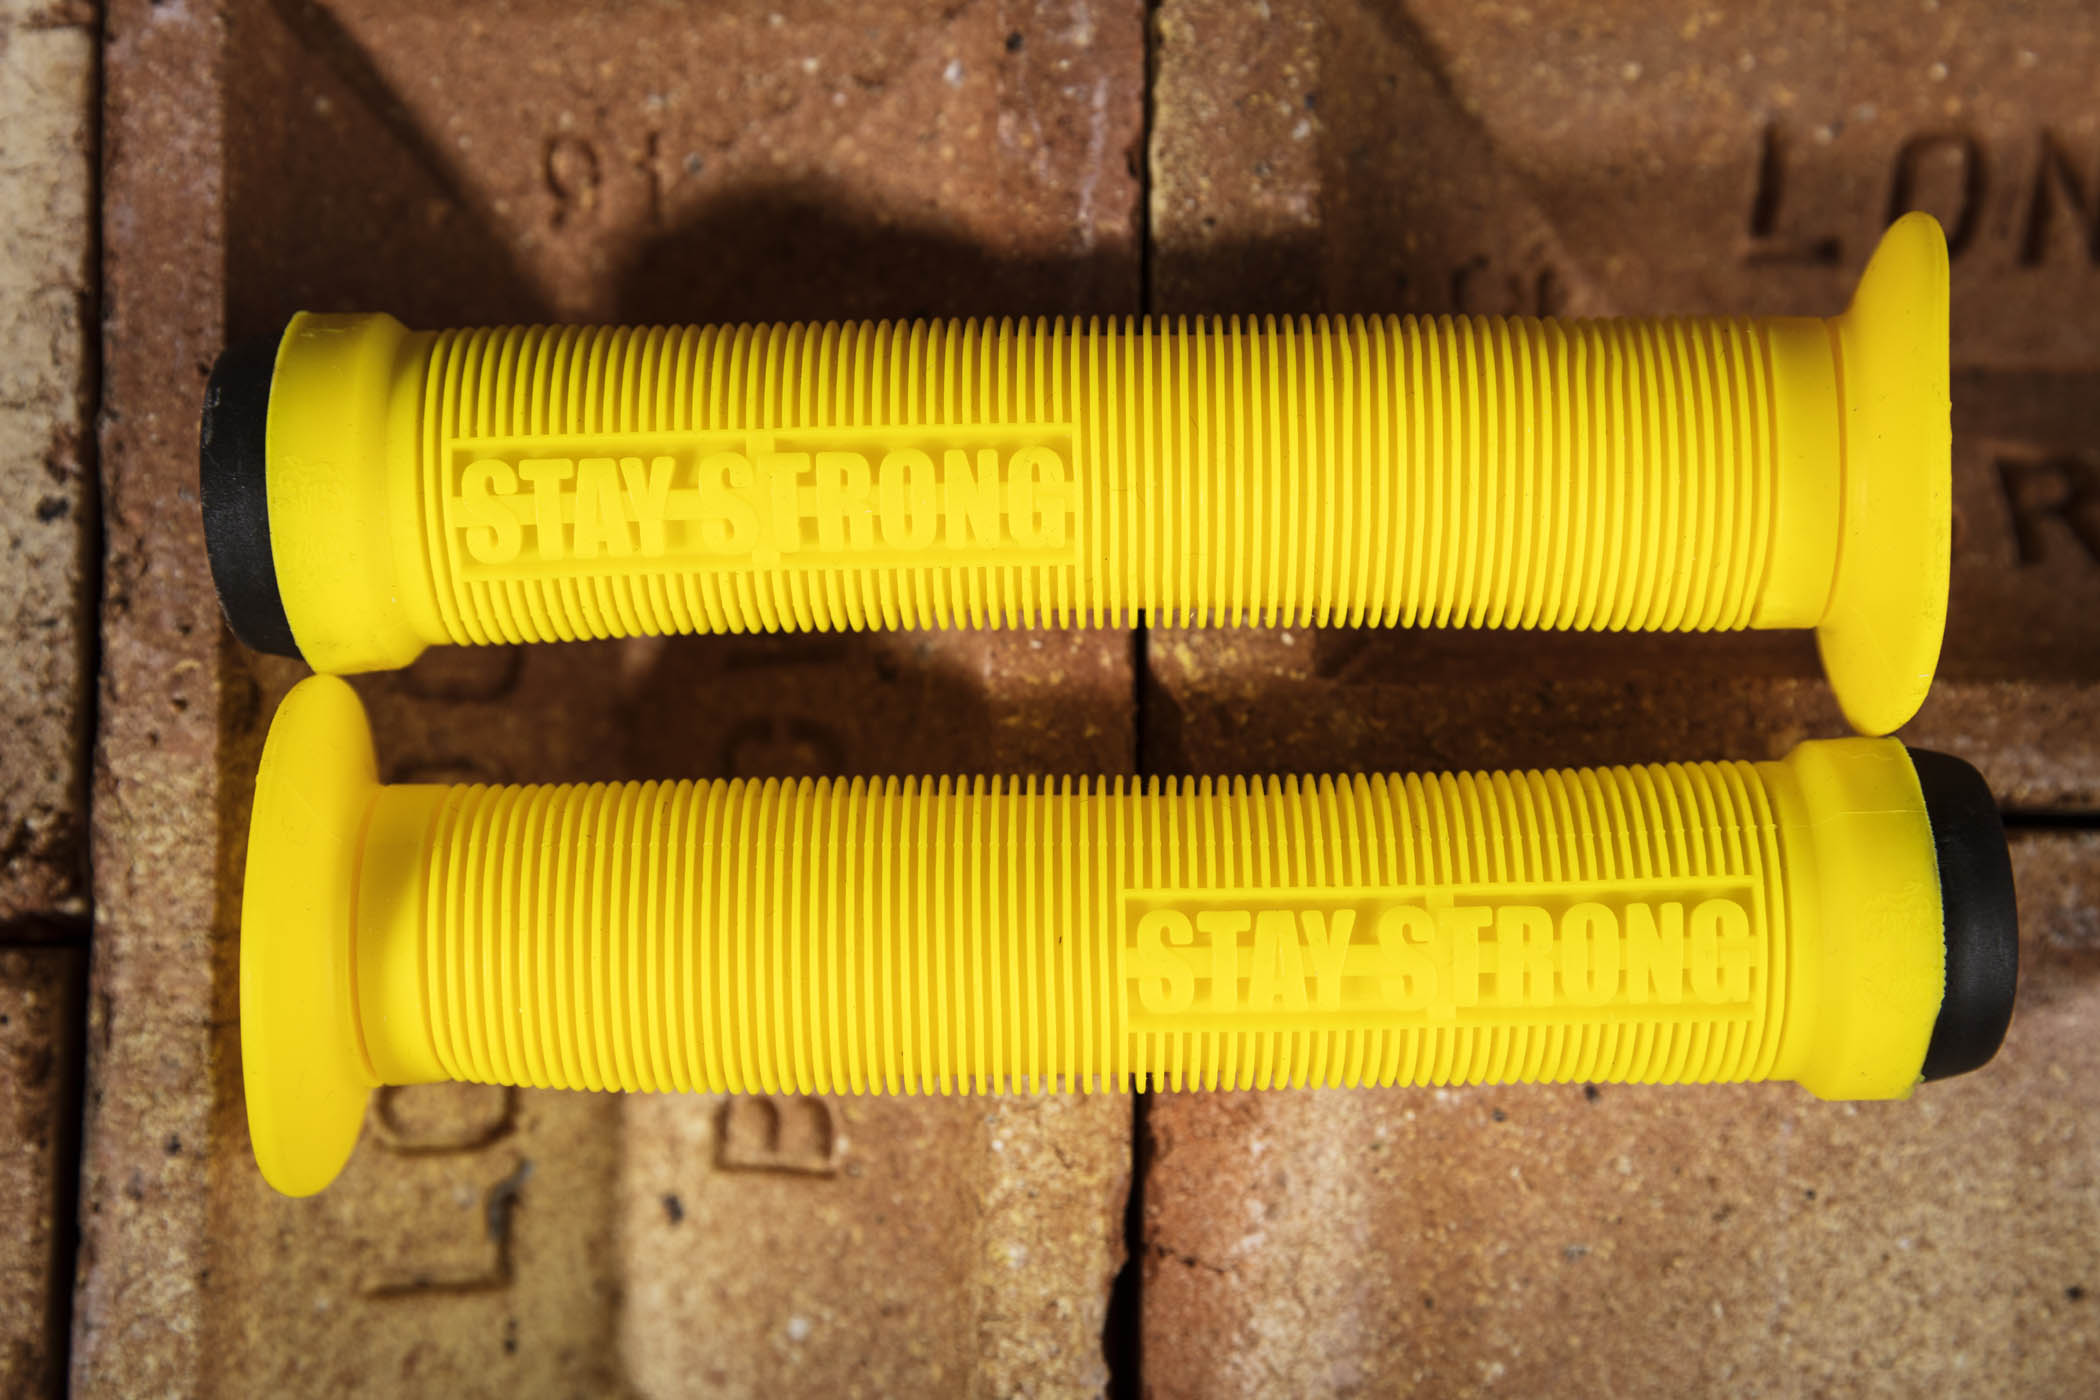 ODI X STAY STRONG GRIPS – REVIEW